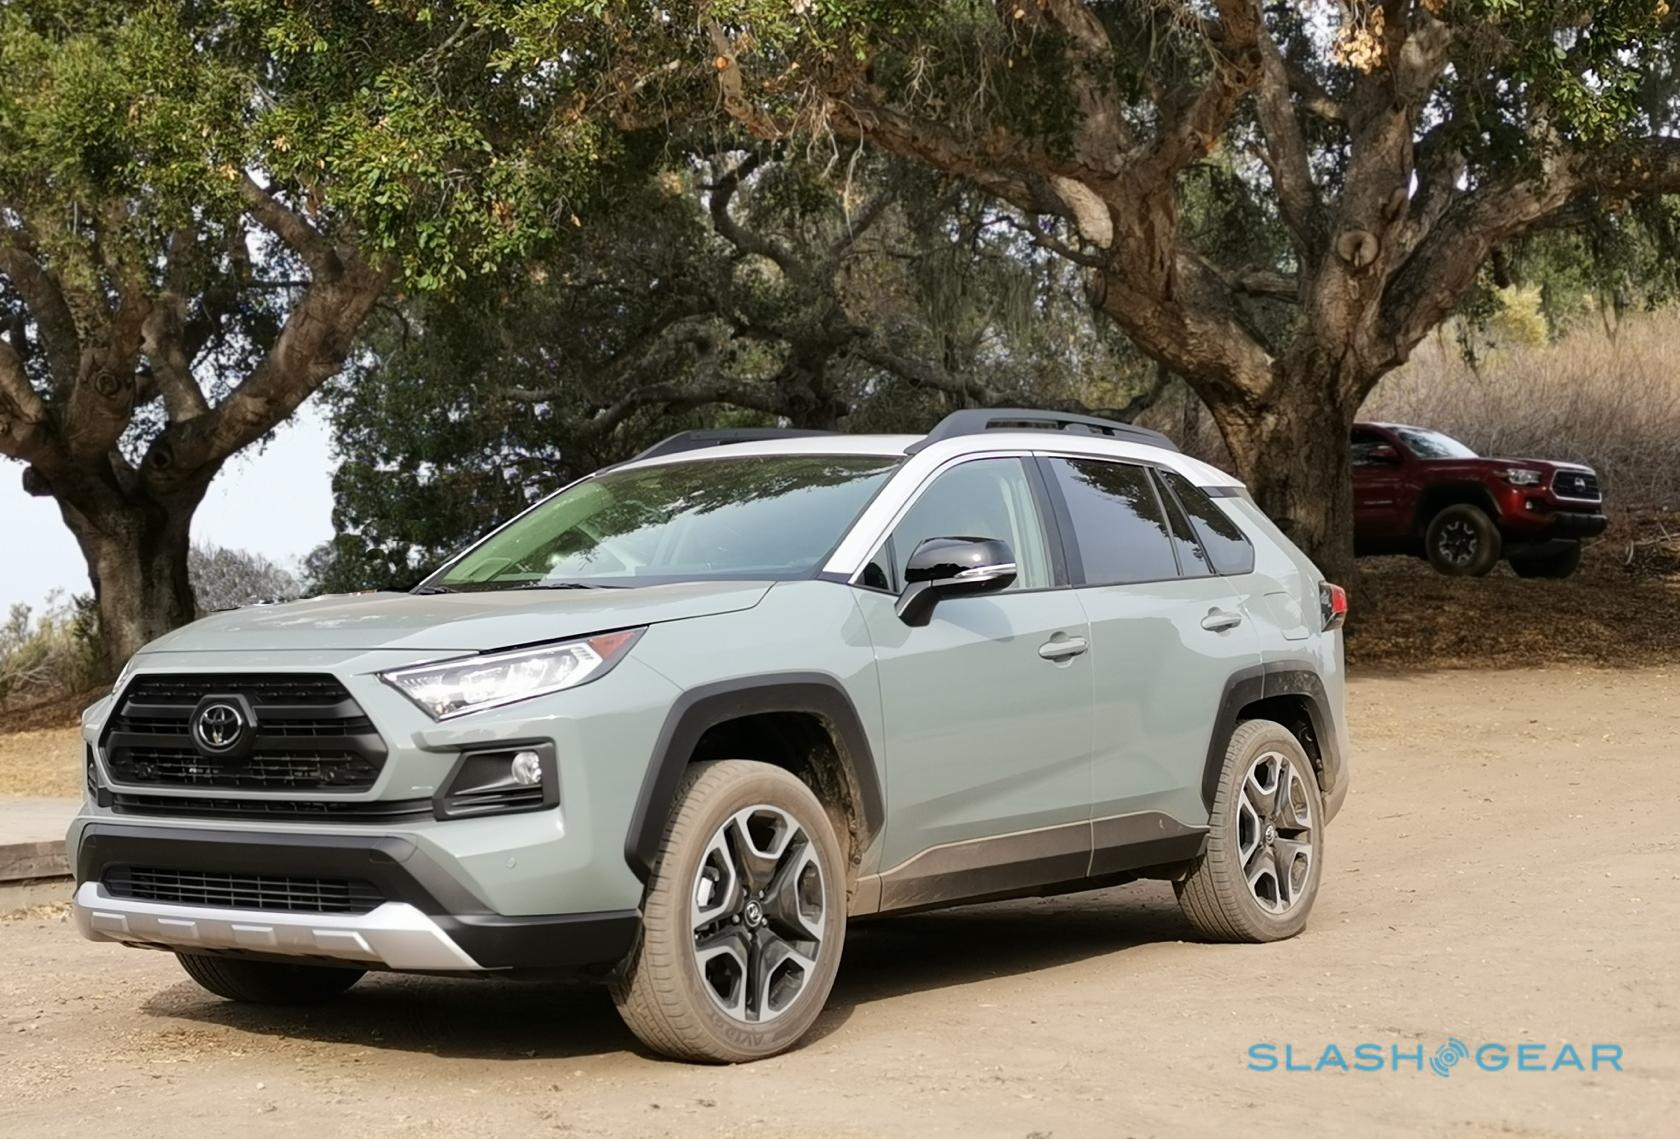 2019 Toyota RAV4: Rugged Styling, Well Equipped, More Off-road Capabilty >> 2019 Toyota Rav4 First Drive Review Compact Suv Makes Huge